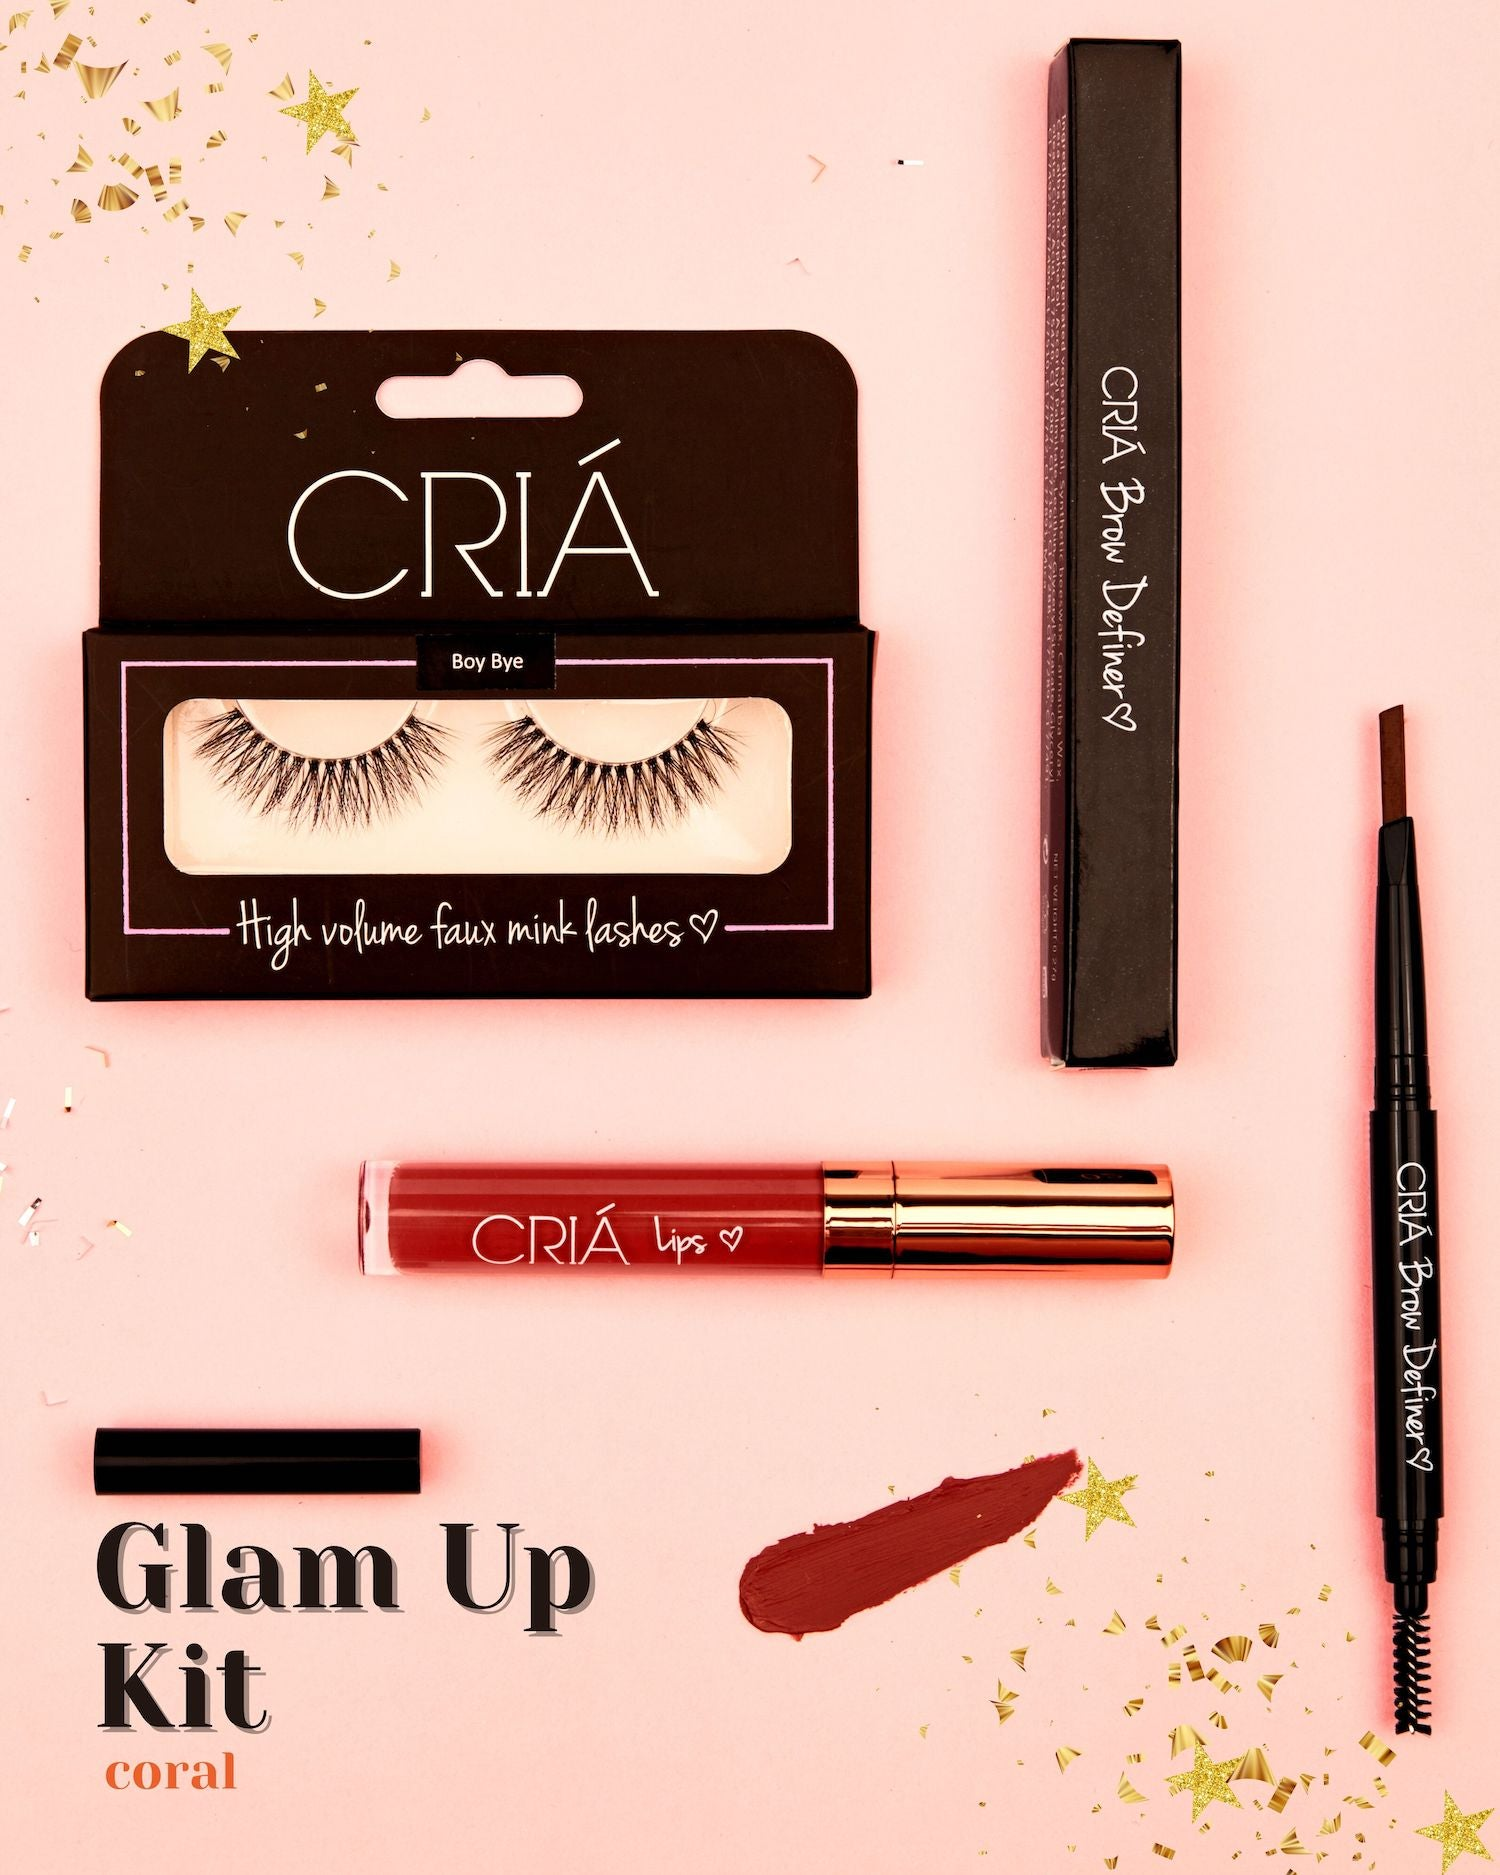 Glam Up Kit (Coral) - CRIÁ Cosmetics